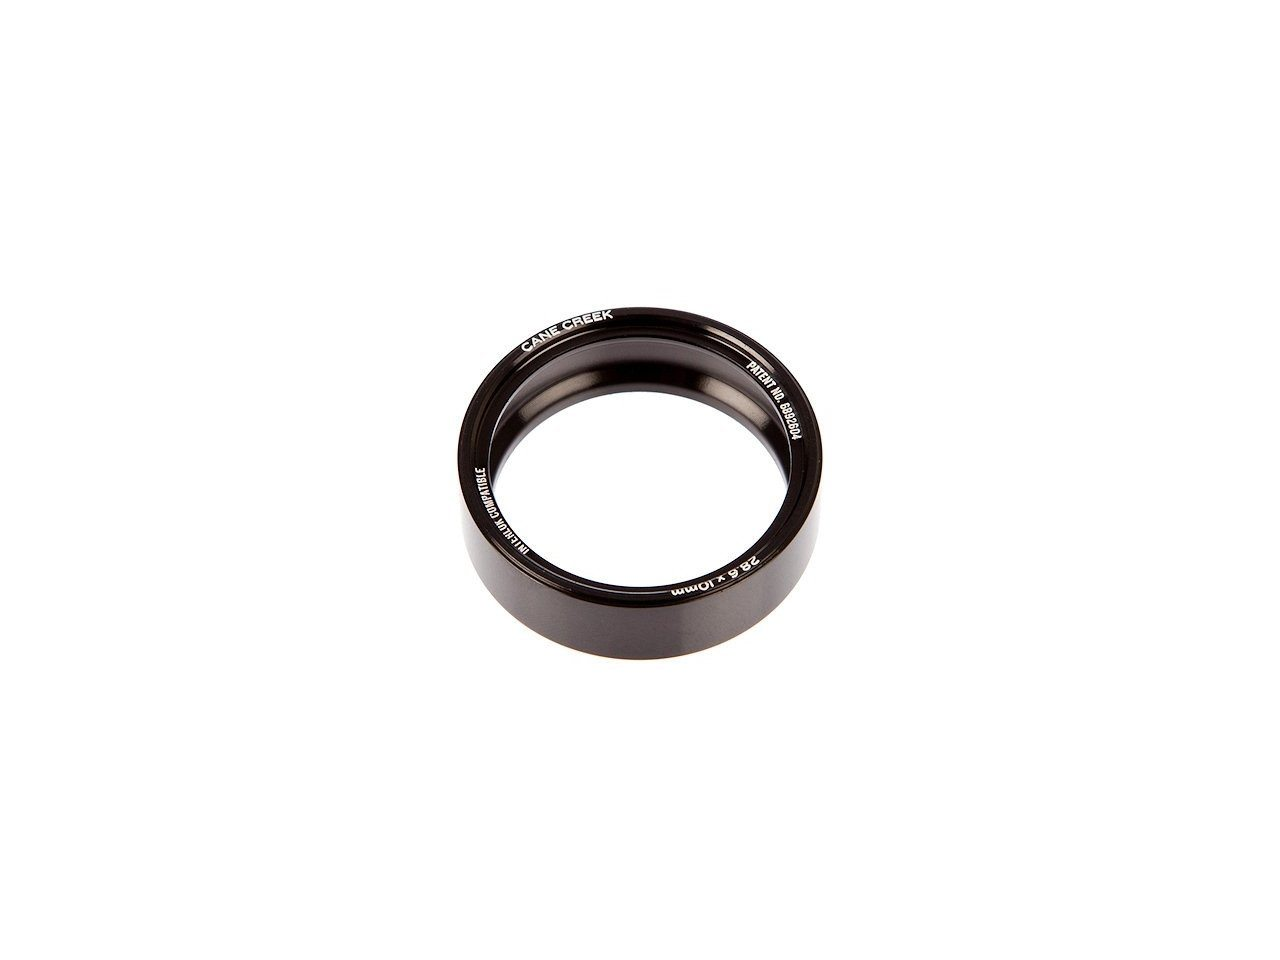 Cane Creek 110-Series 10mm Interlok Spacer Silver